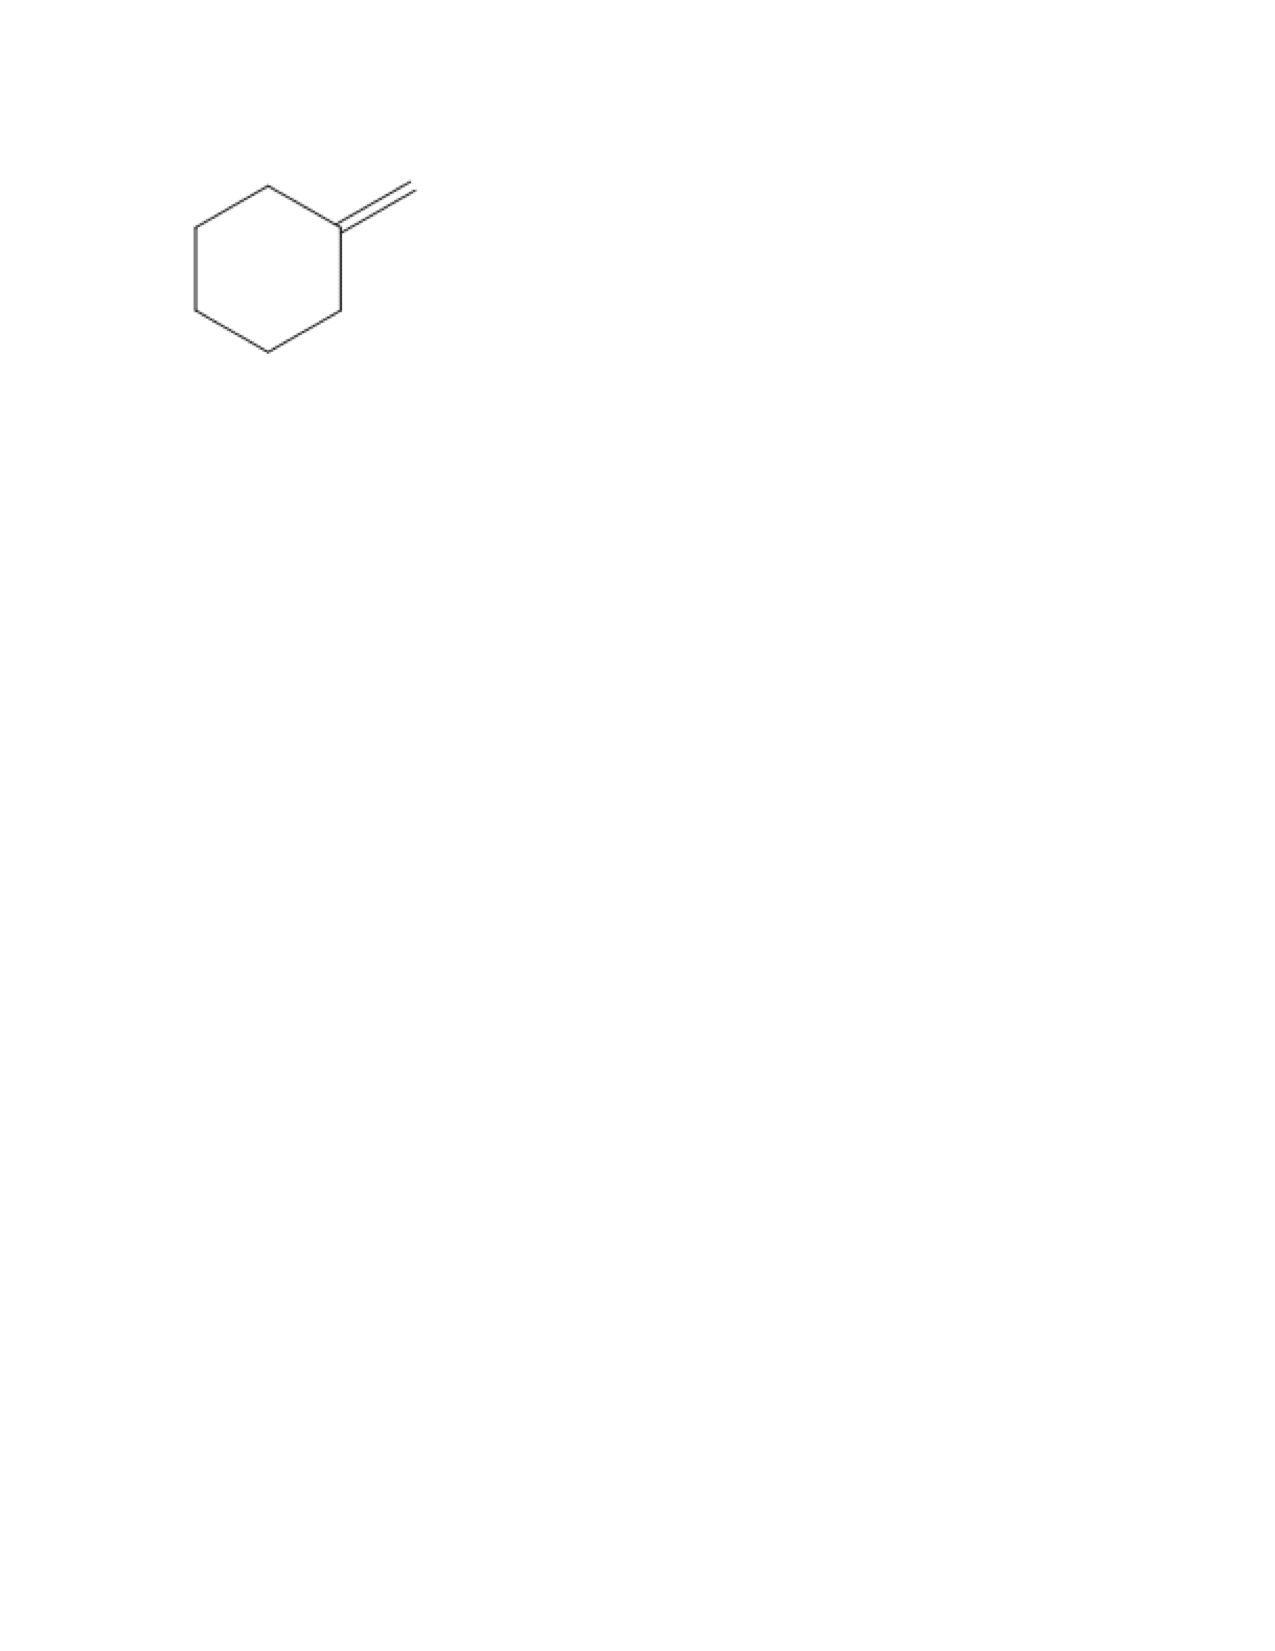 Draw the structure resulting from a reaction of a)